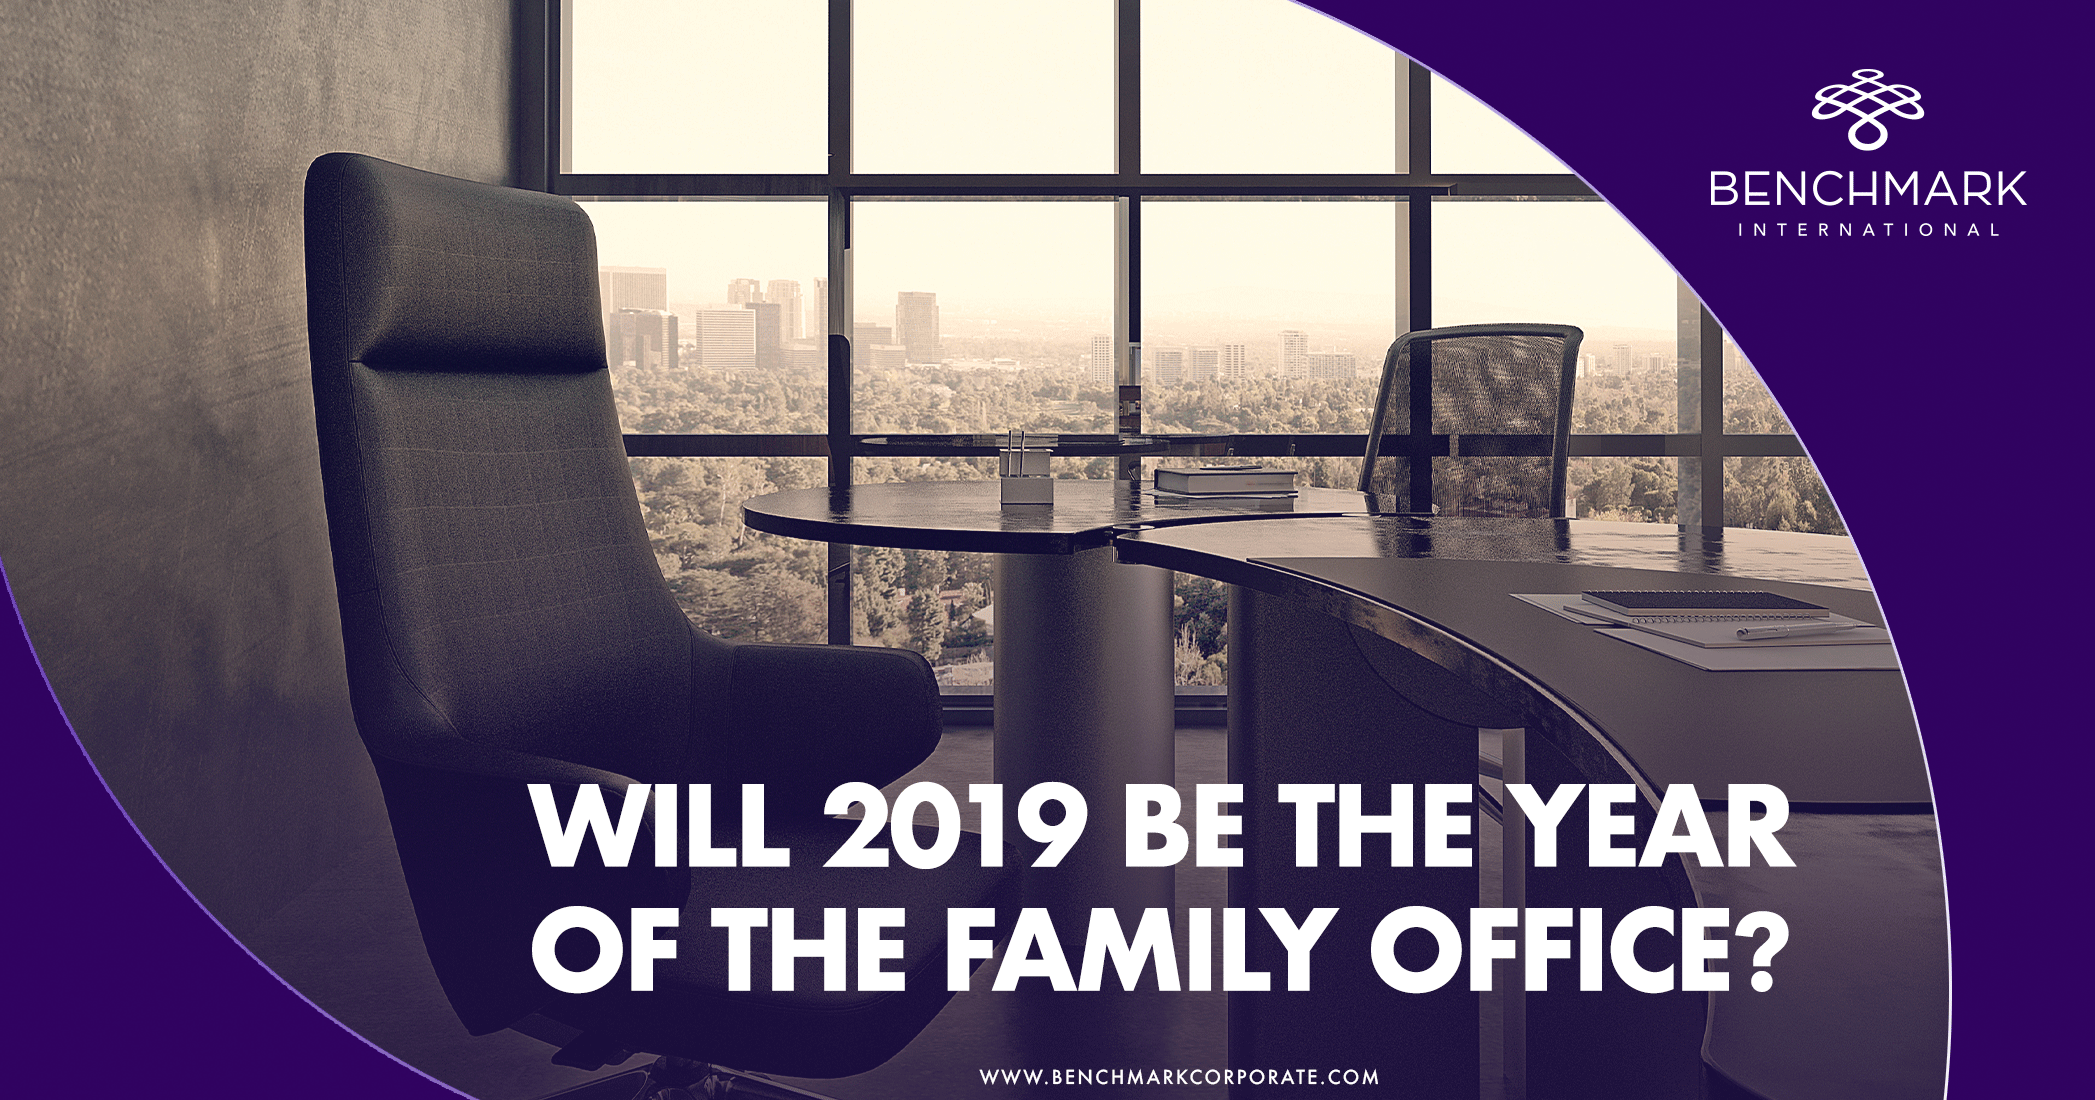 Will 2019 Be the Year of the Family Office?